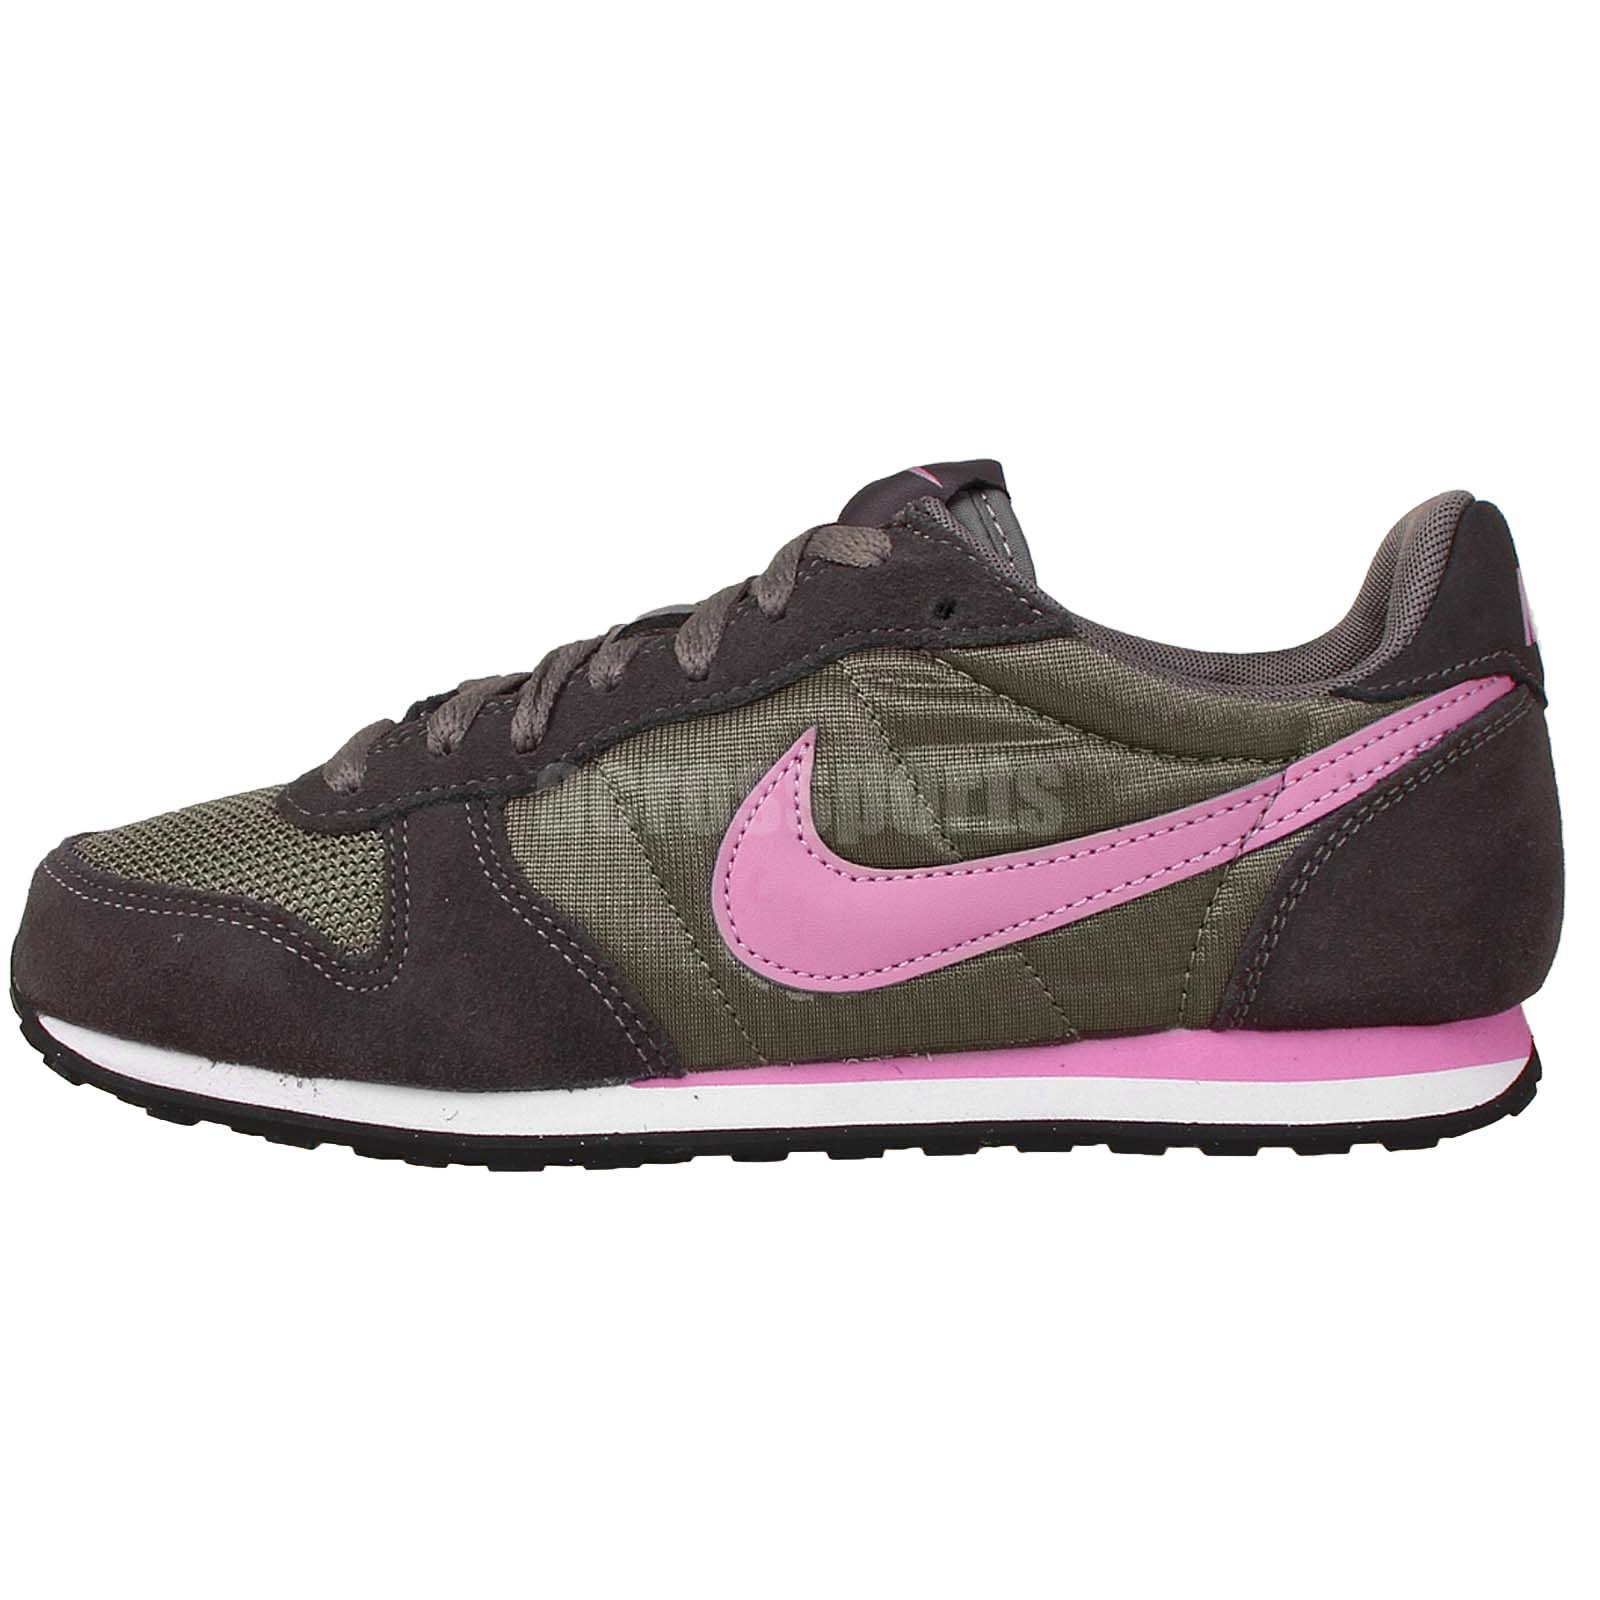 Luxury Nike Shoes For Women Casual 2014 Cs4ldatabaseca